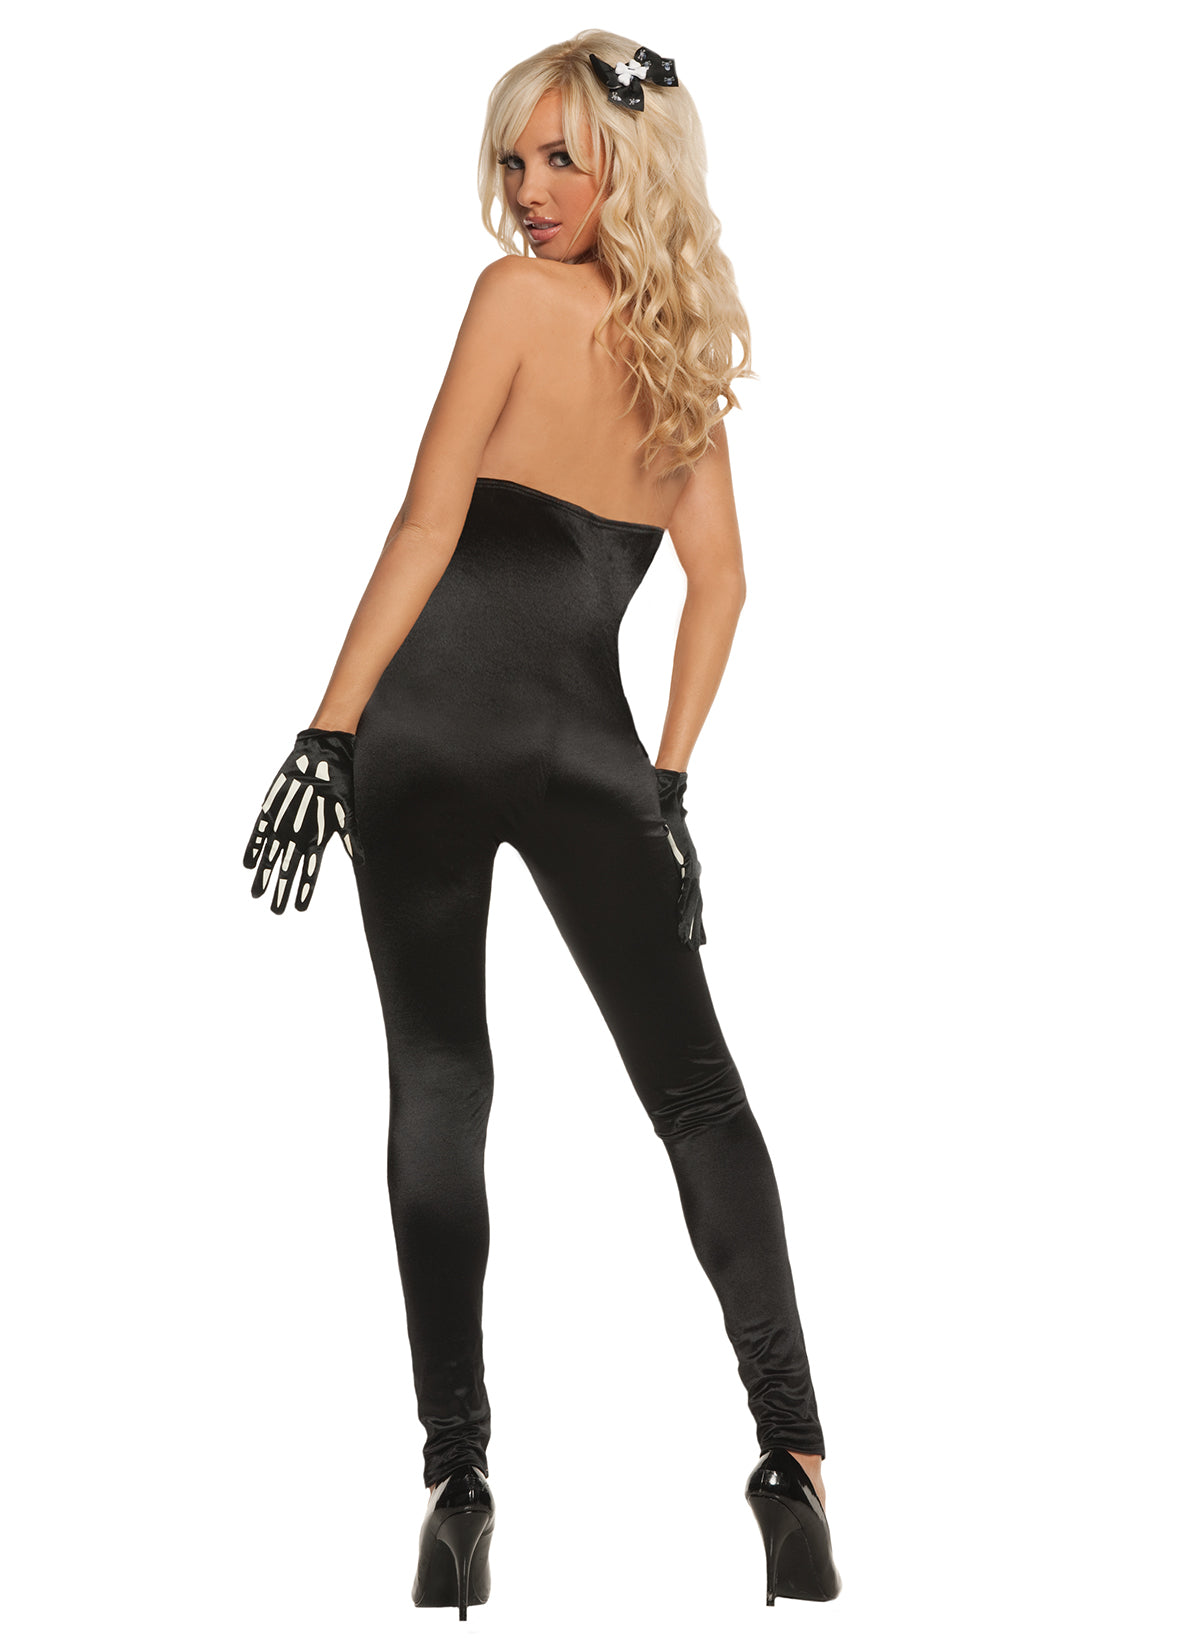 a02e4e3ec94 Sexy Skeleton - Glow in the dark. 3 pc. costume includes jumpsuit, gloves  and hair pin.